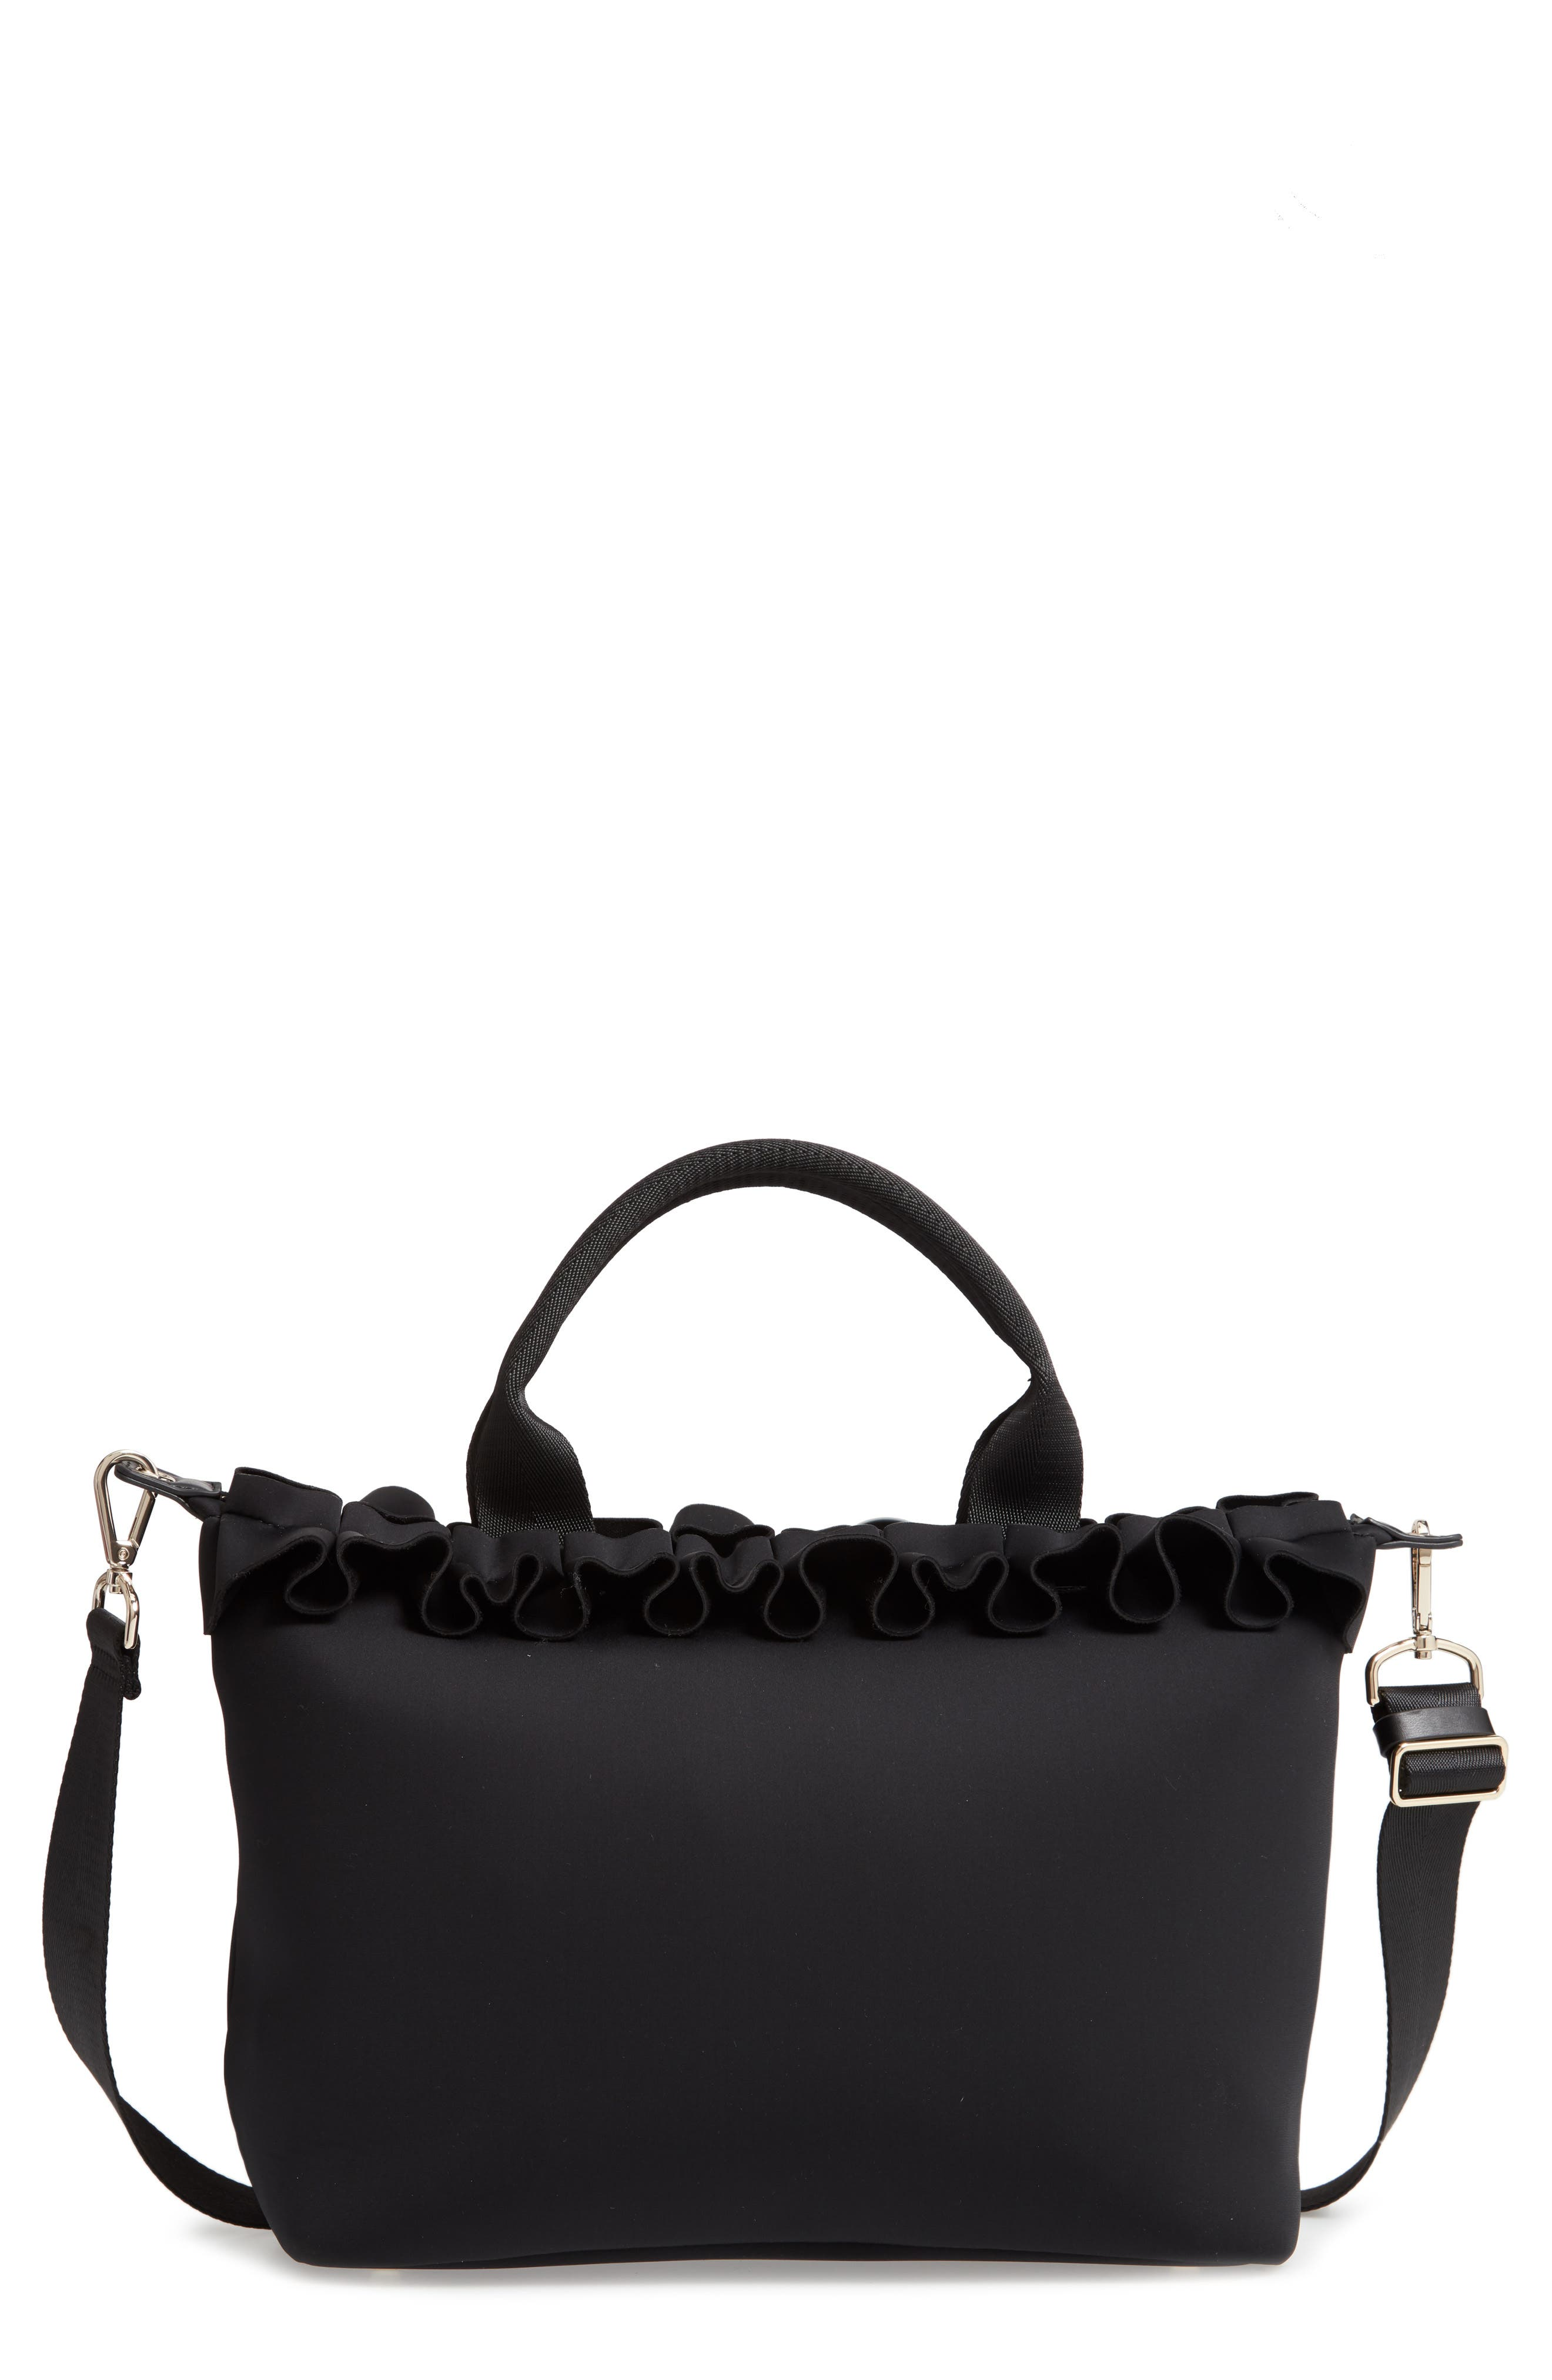 TED BAKER LONDON Ryllee Ruffle Tote, Main, color, 001